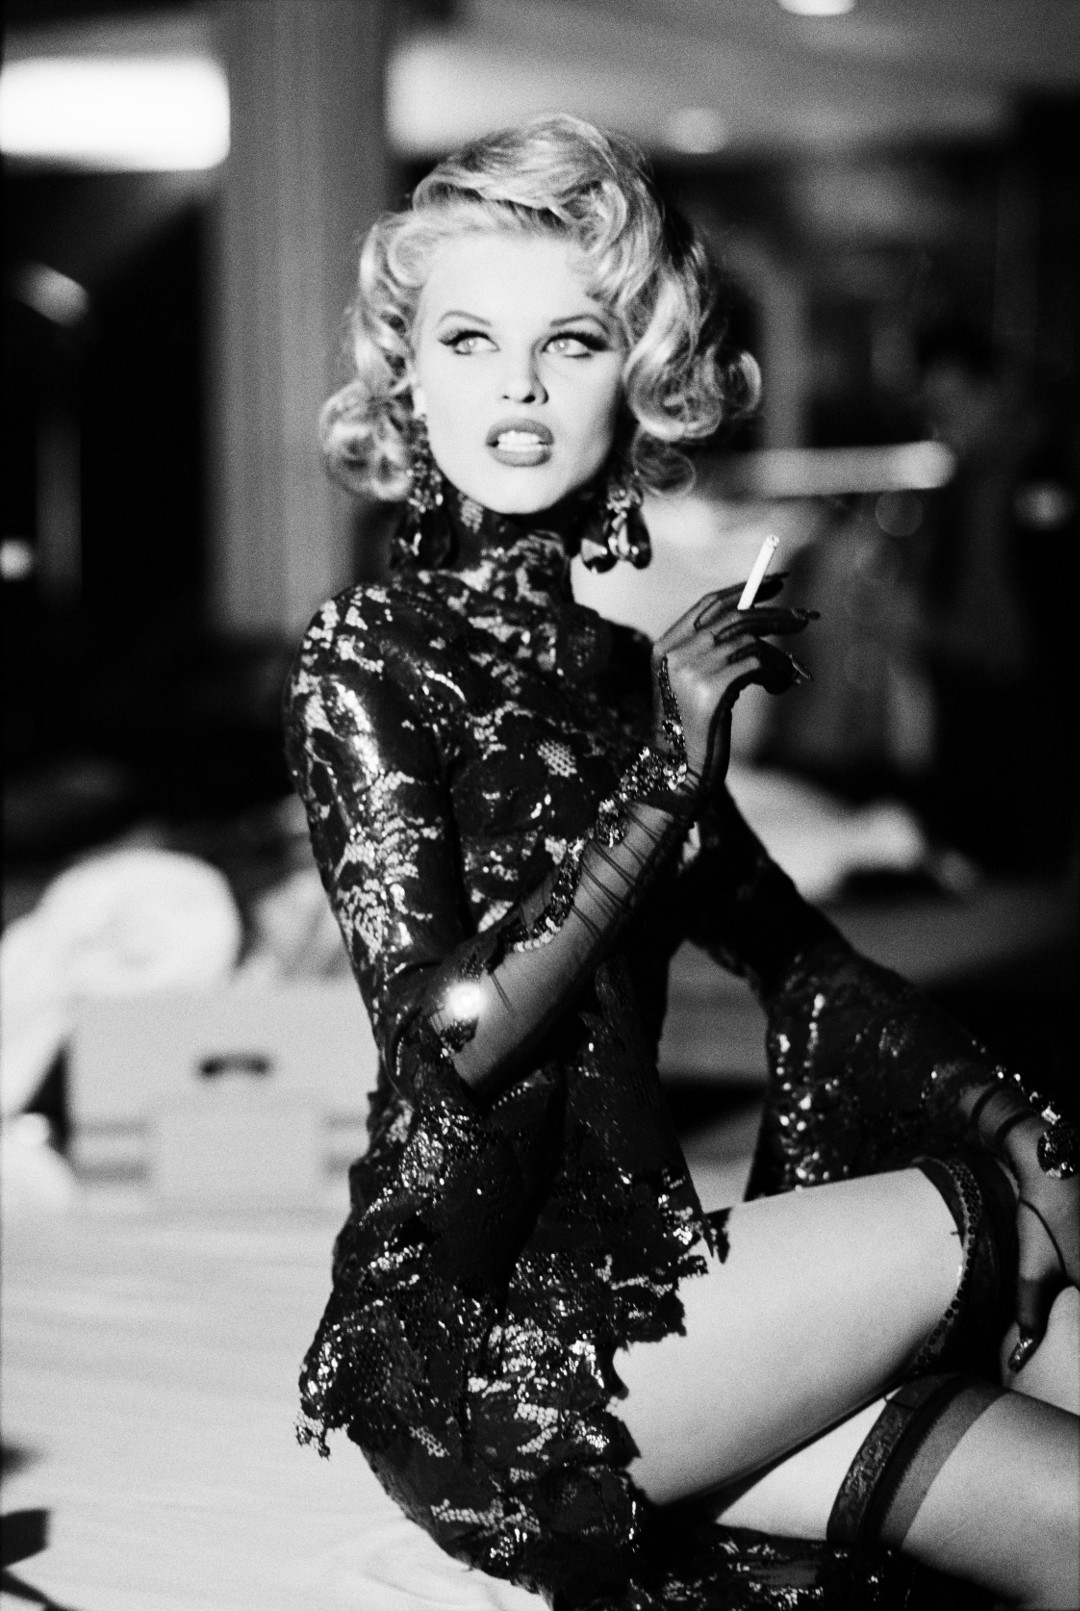 Ellen von Unwerth, Eva Herzigová, behind the scenes at the Thierry Mugler fashion show, Paris, 1992. Photo : © Ellen von Unwerth. Outfit: Thierry Mugler, Les Cow-boys collection, prêt-à-porter spring/summer 1992.